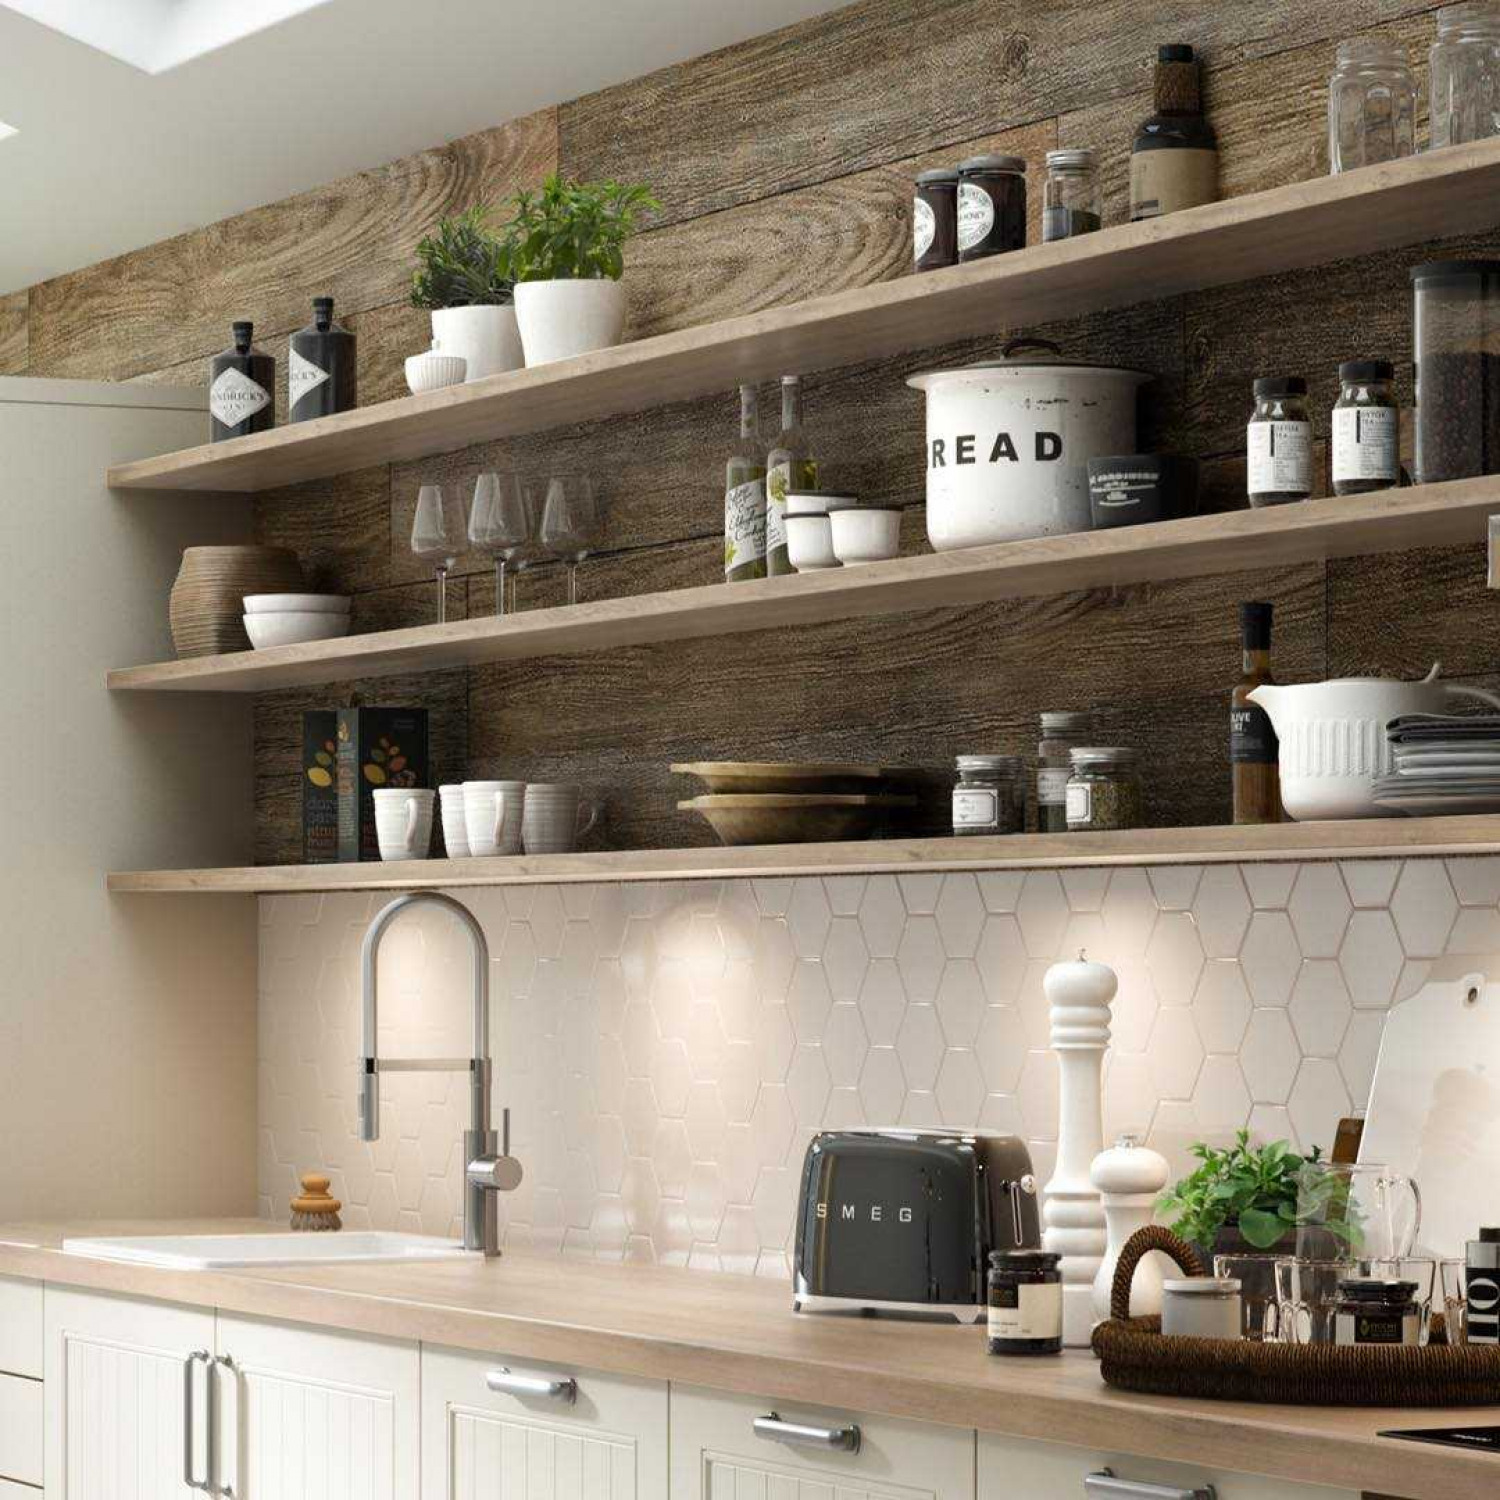 Kitchen shelving ideas Discover storage ideas for your ...